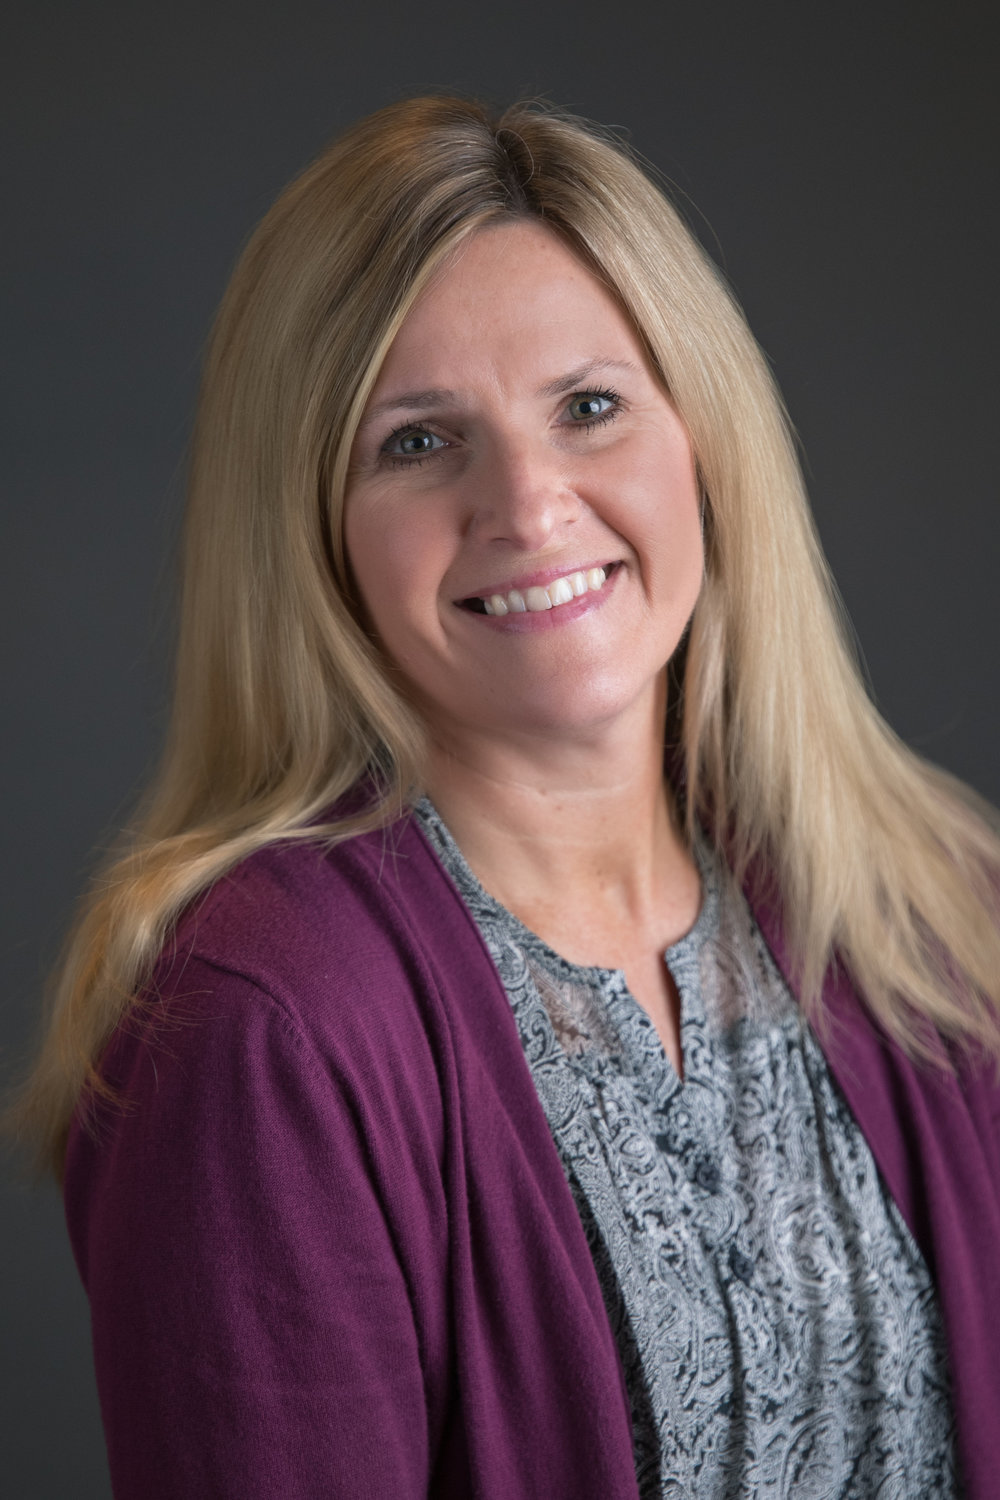 Darcy Riddle, Administrative Assistant